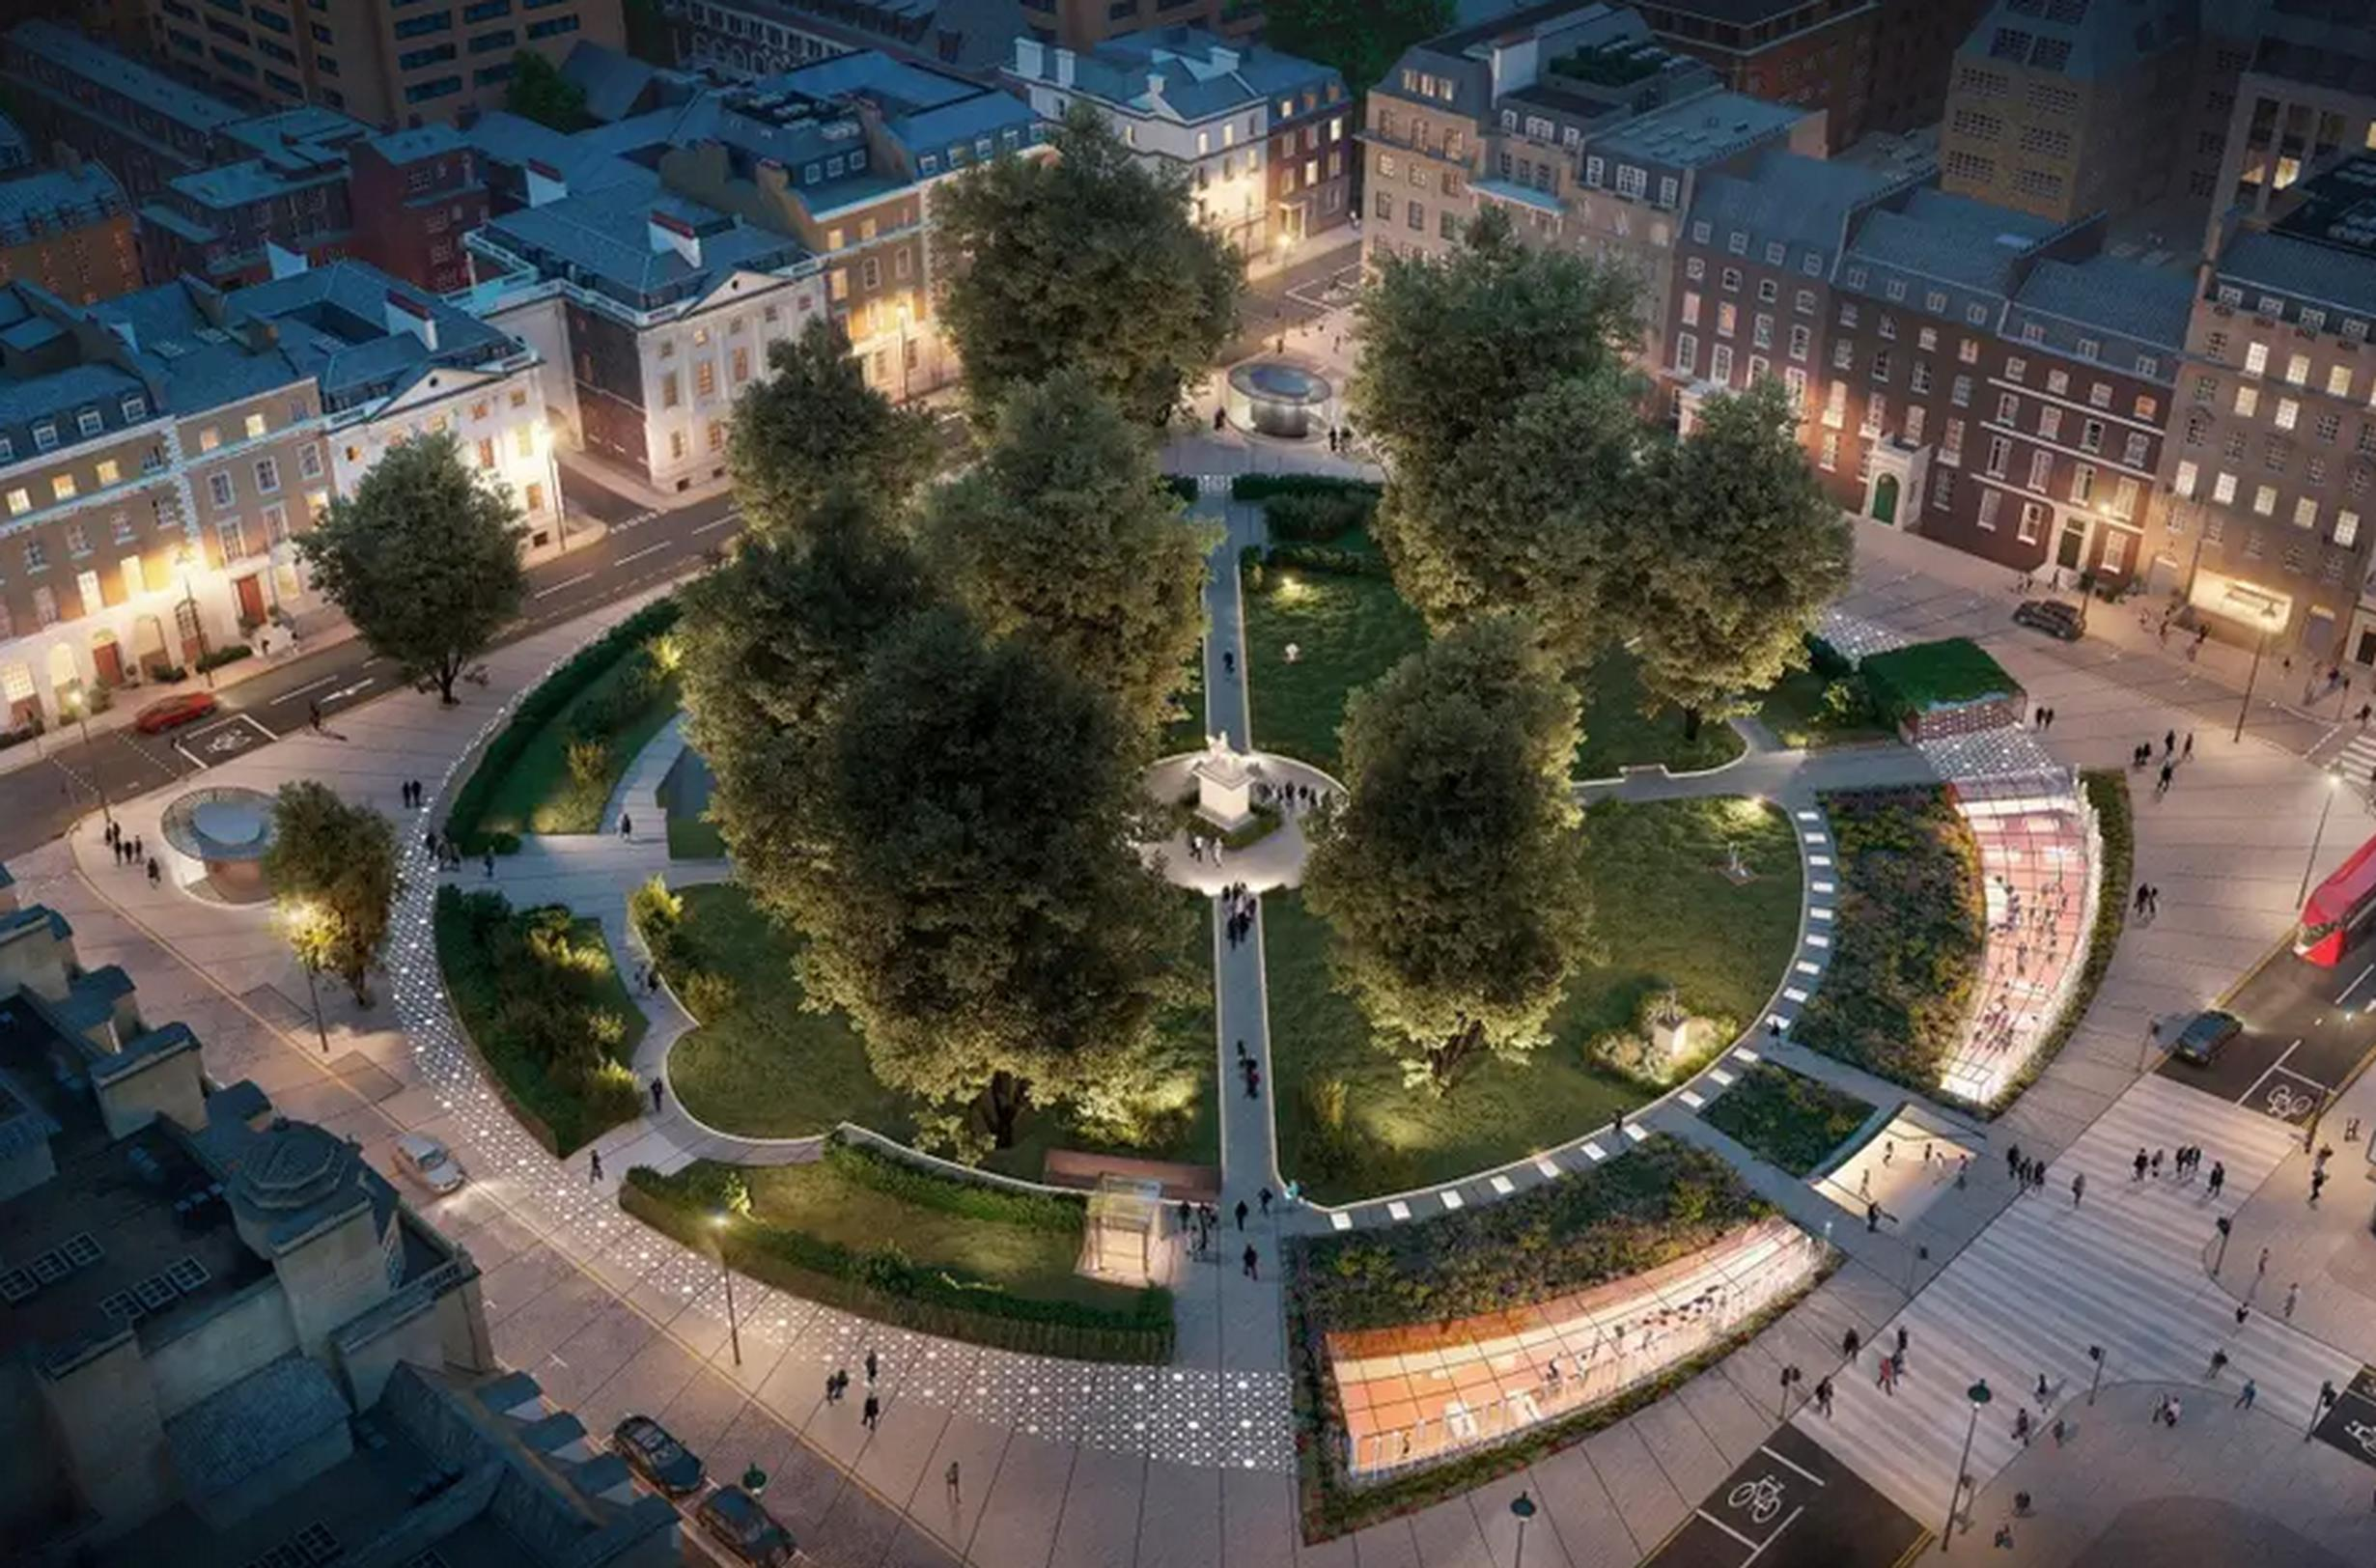 Proposal for revamping Cavendish Square